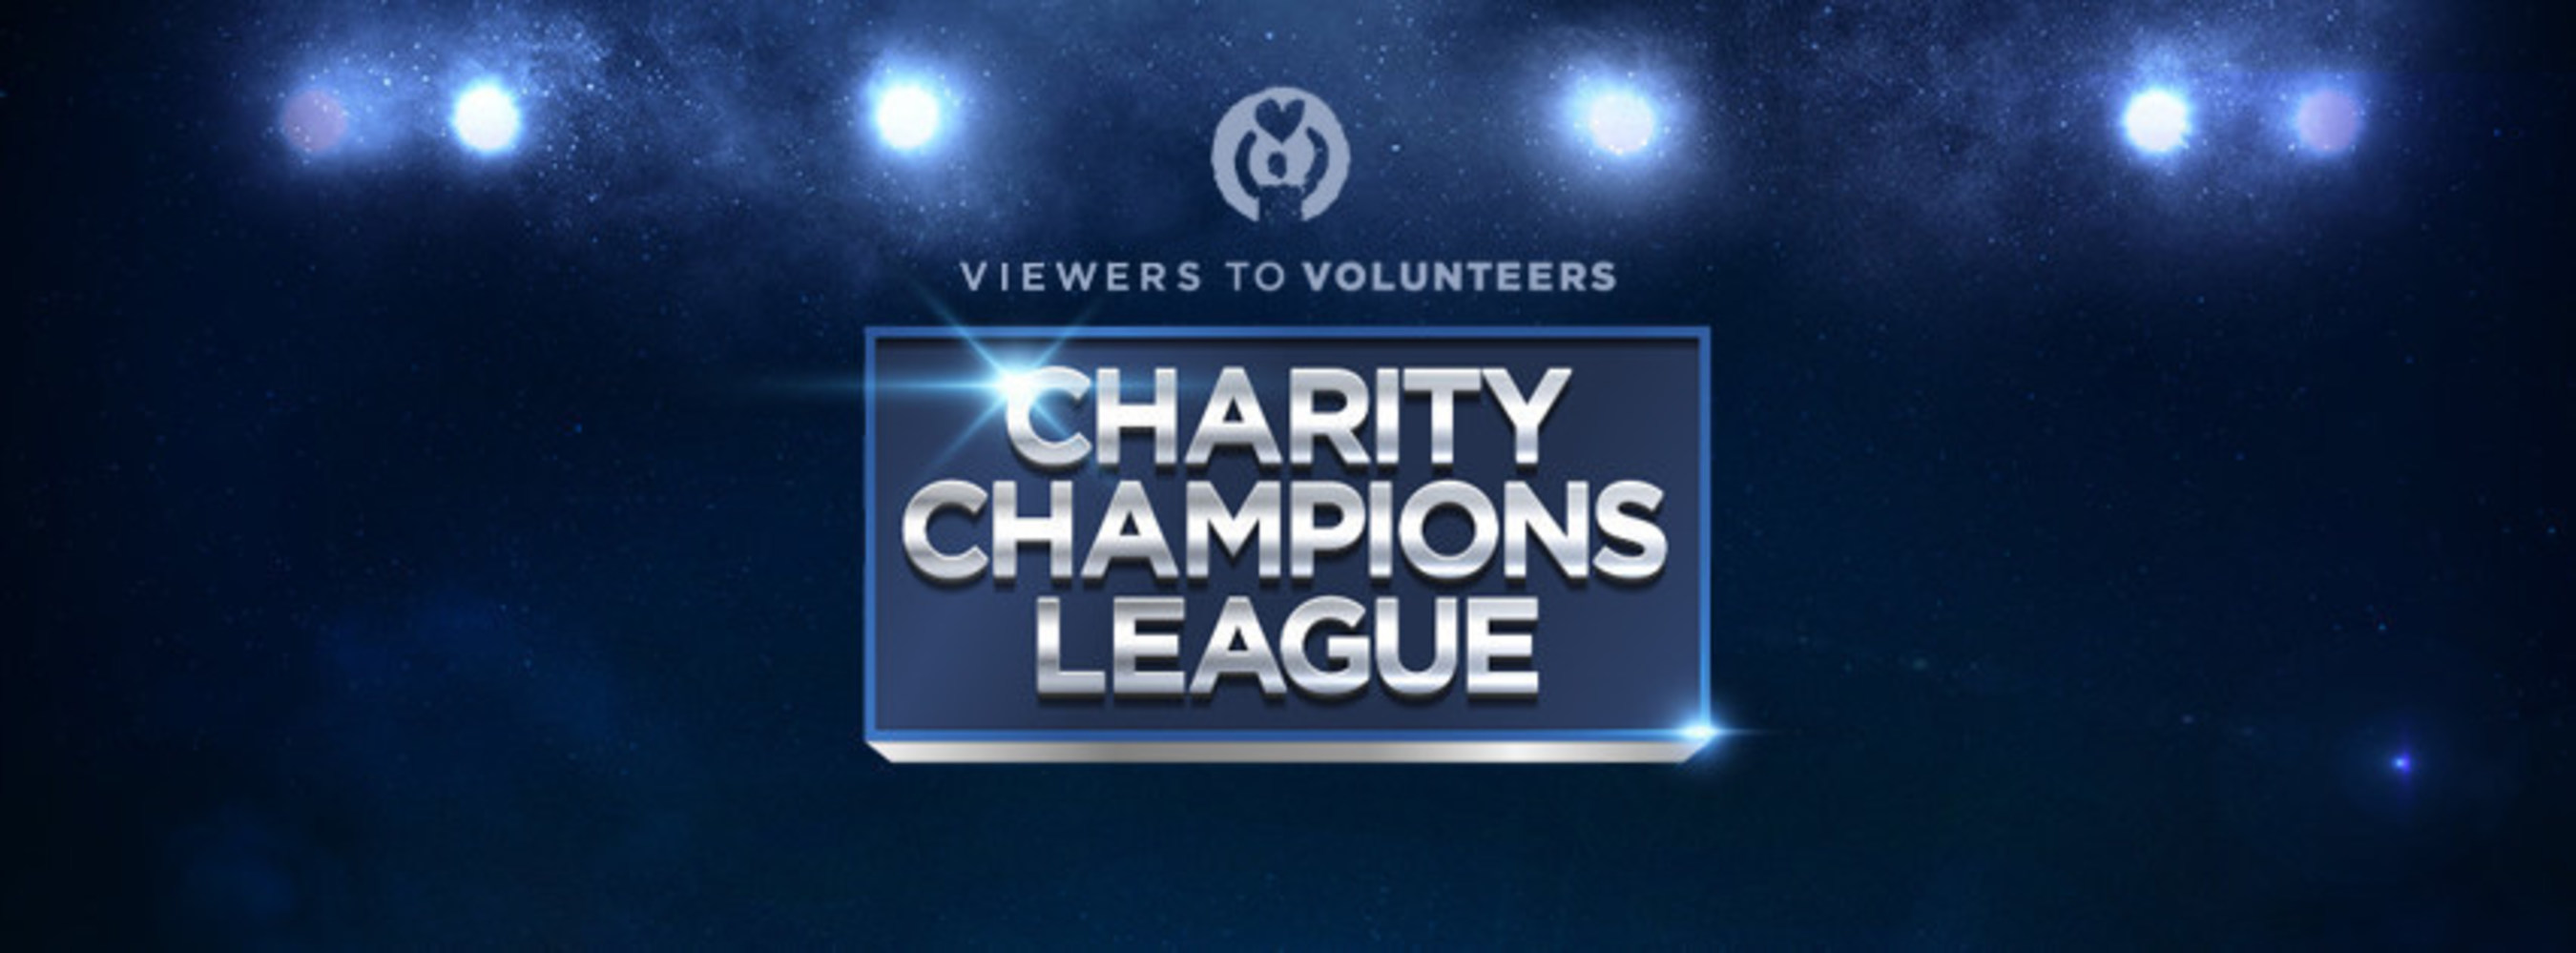 CBS EcoMedia Launches Charity Champions League, First-of-Its-Kind